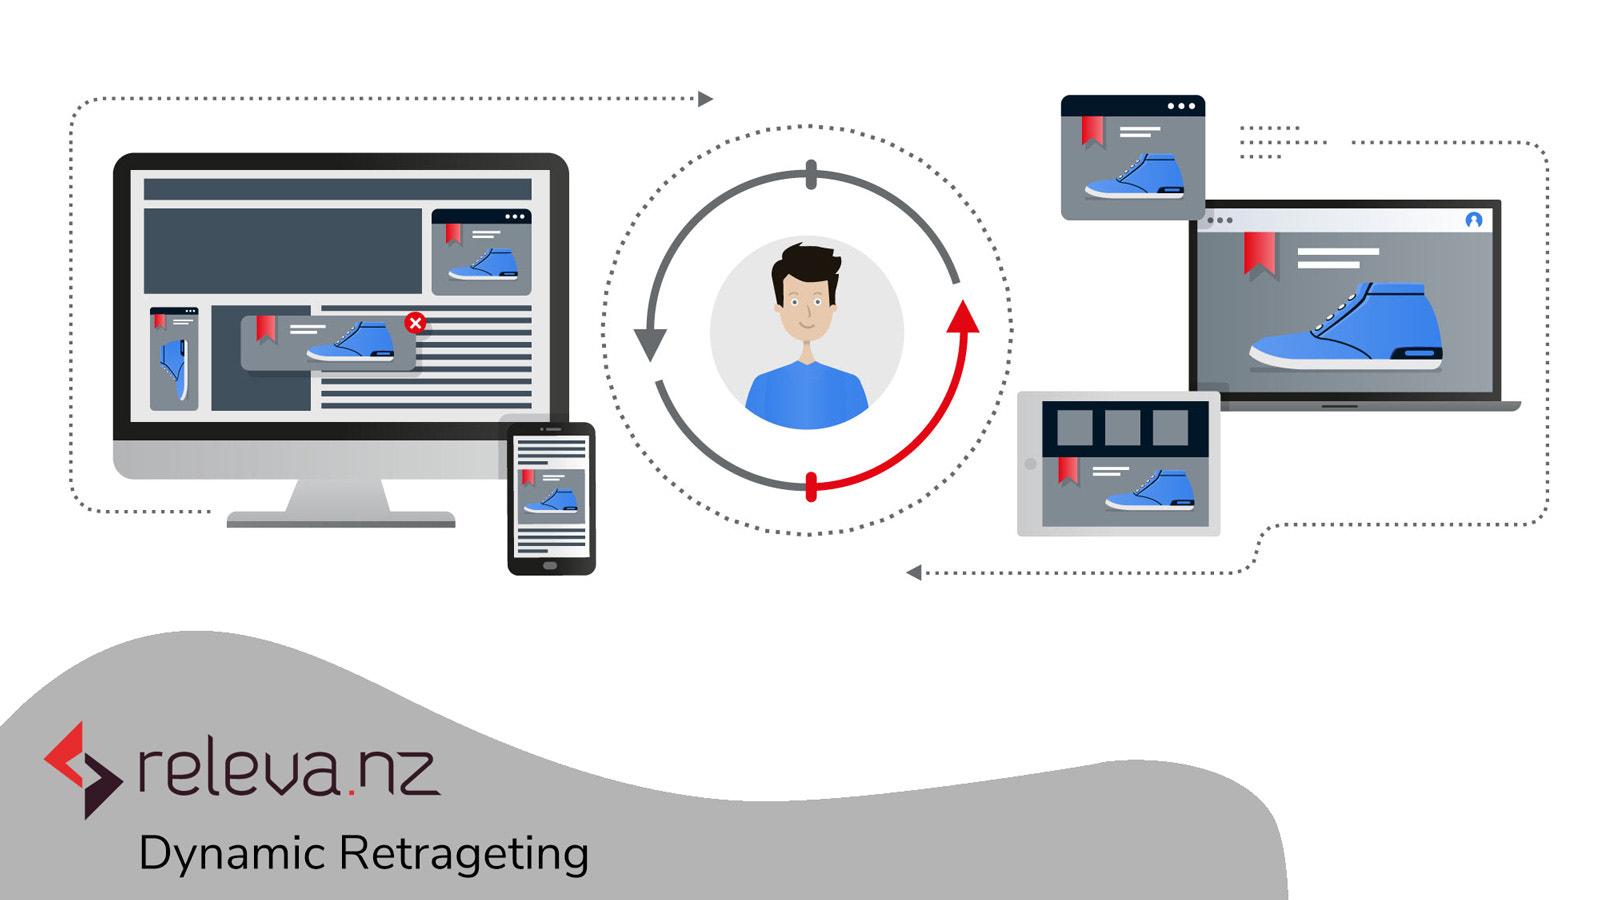 releva.nz: Use dynamic retargeting to bring your visitors back